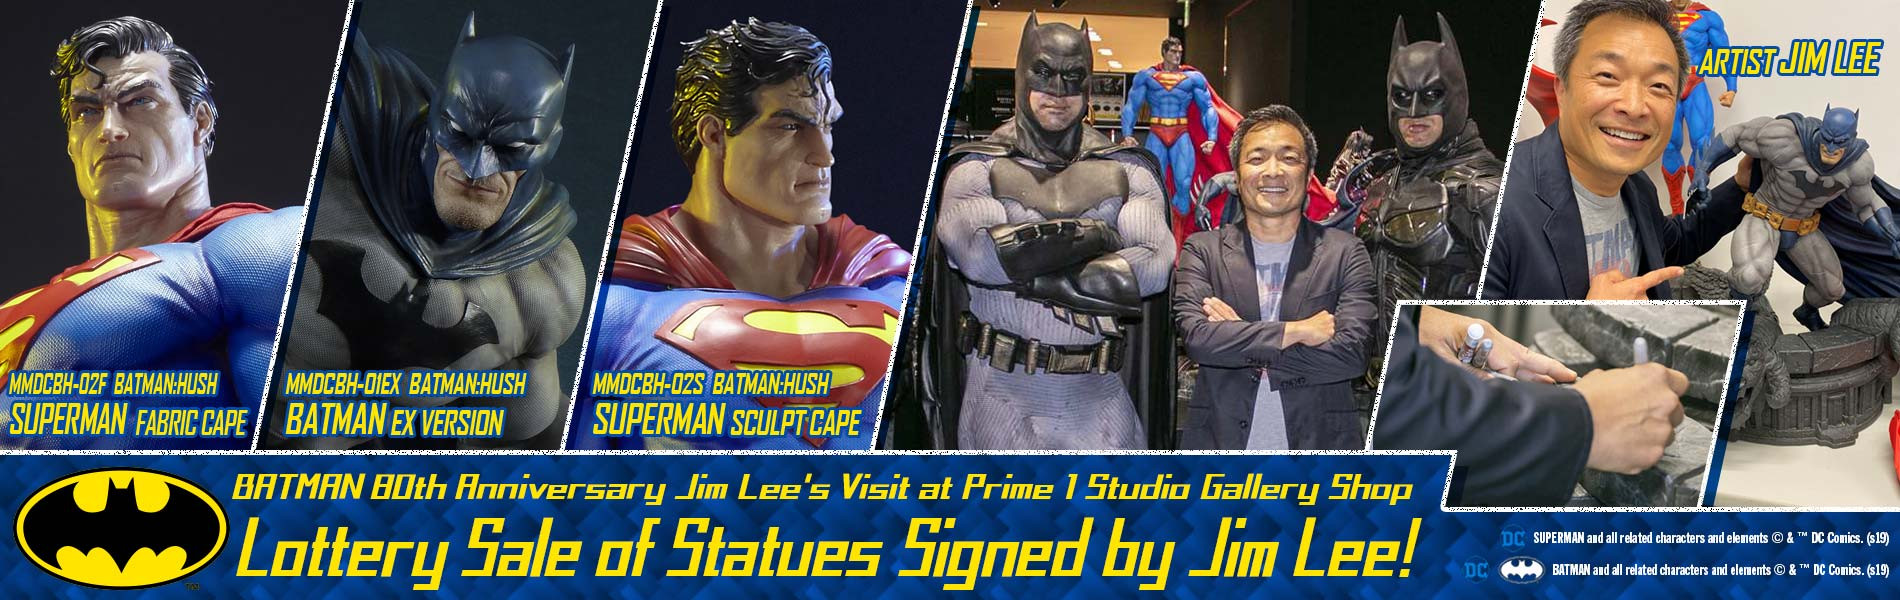 Lottery Sale of Statues Signed by Jim Lee is OPEN!